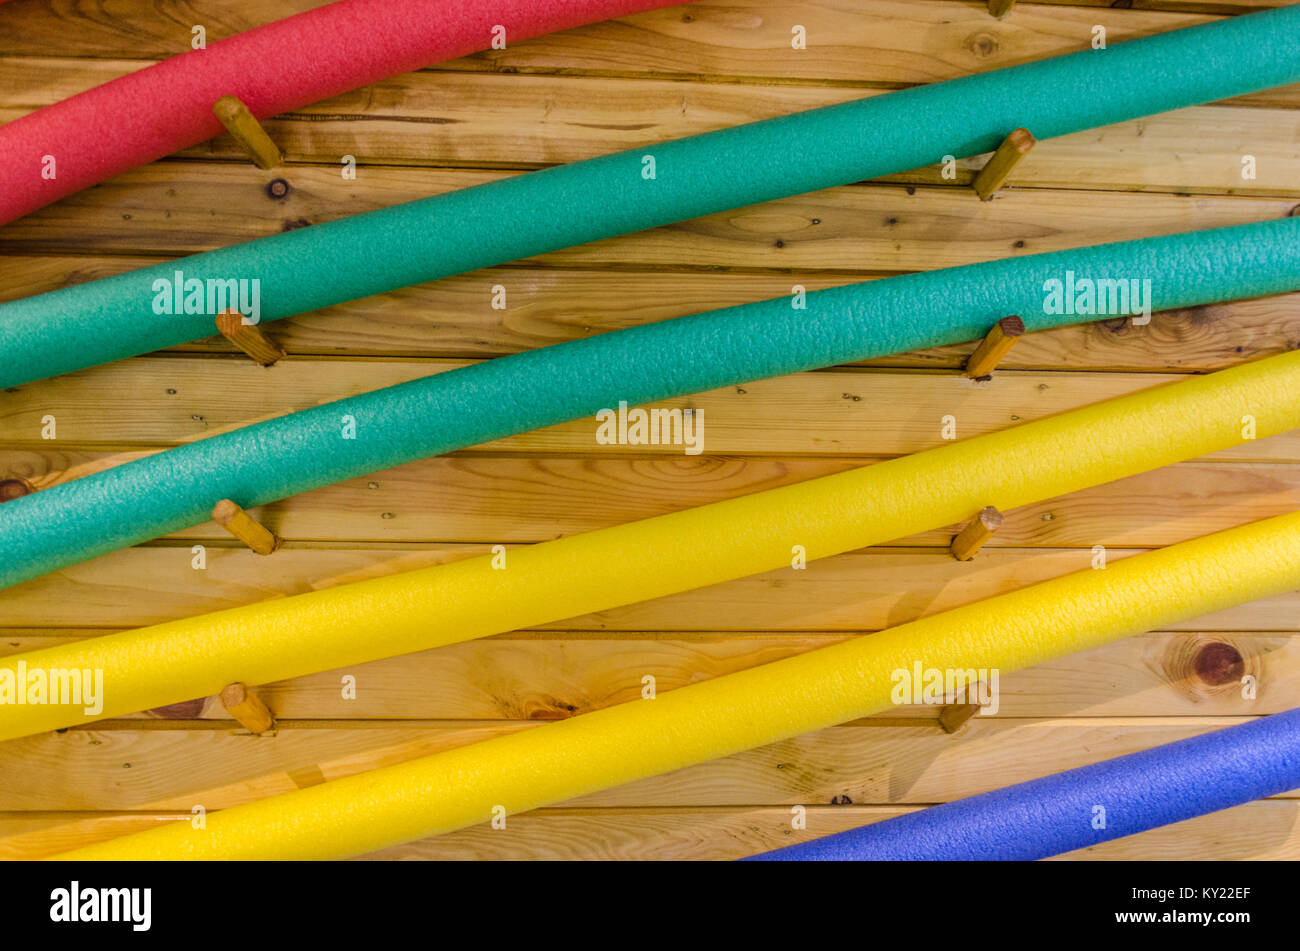 Colorful hydrotherapy pool foam noodles kept over wooden background. - Stock Image